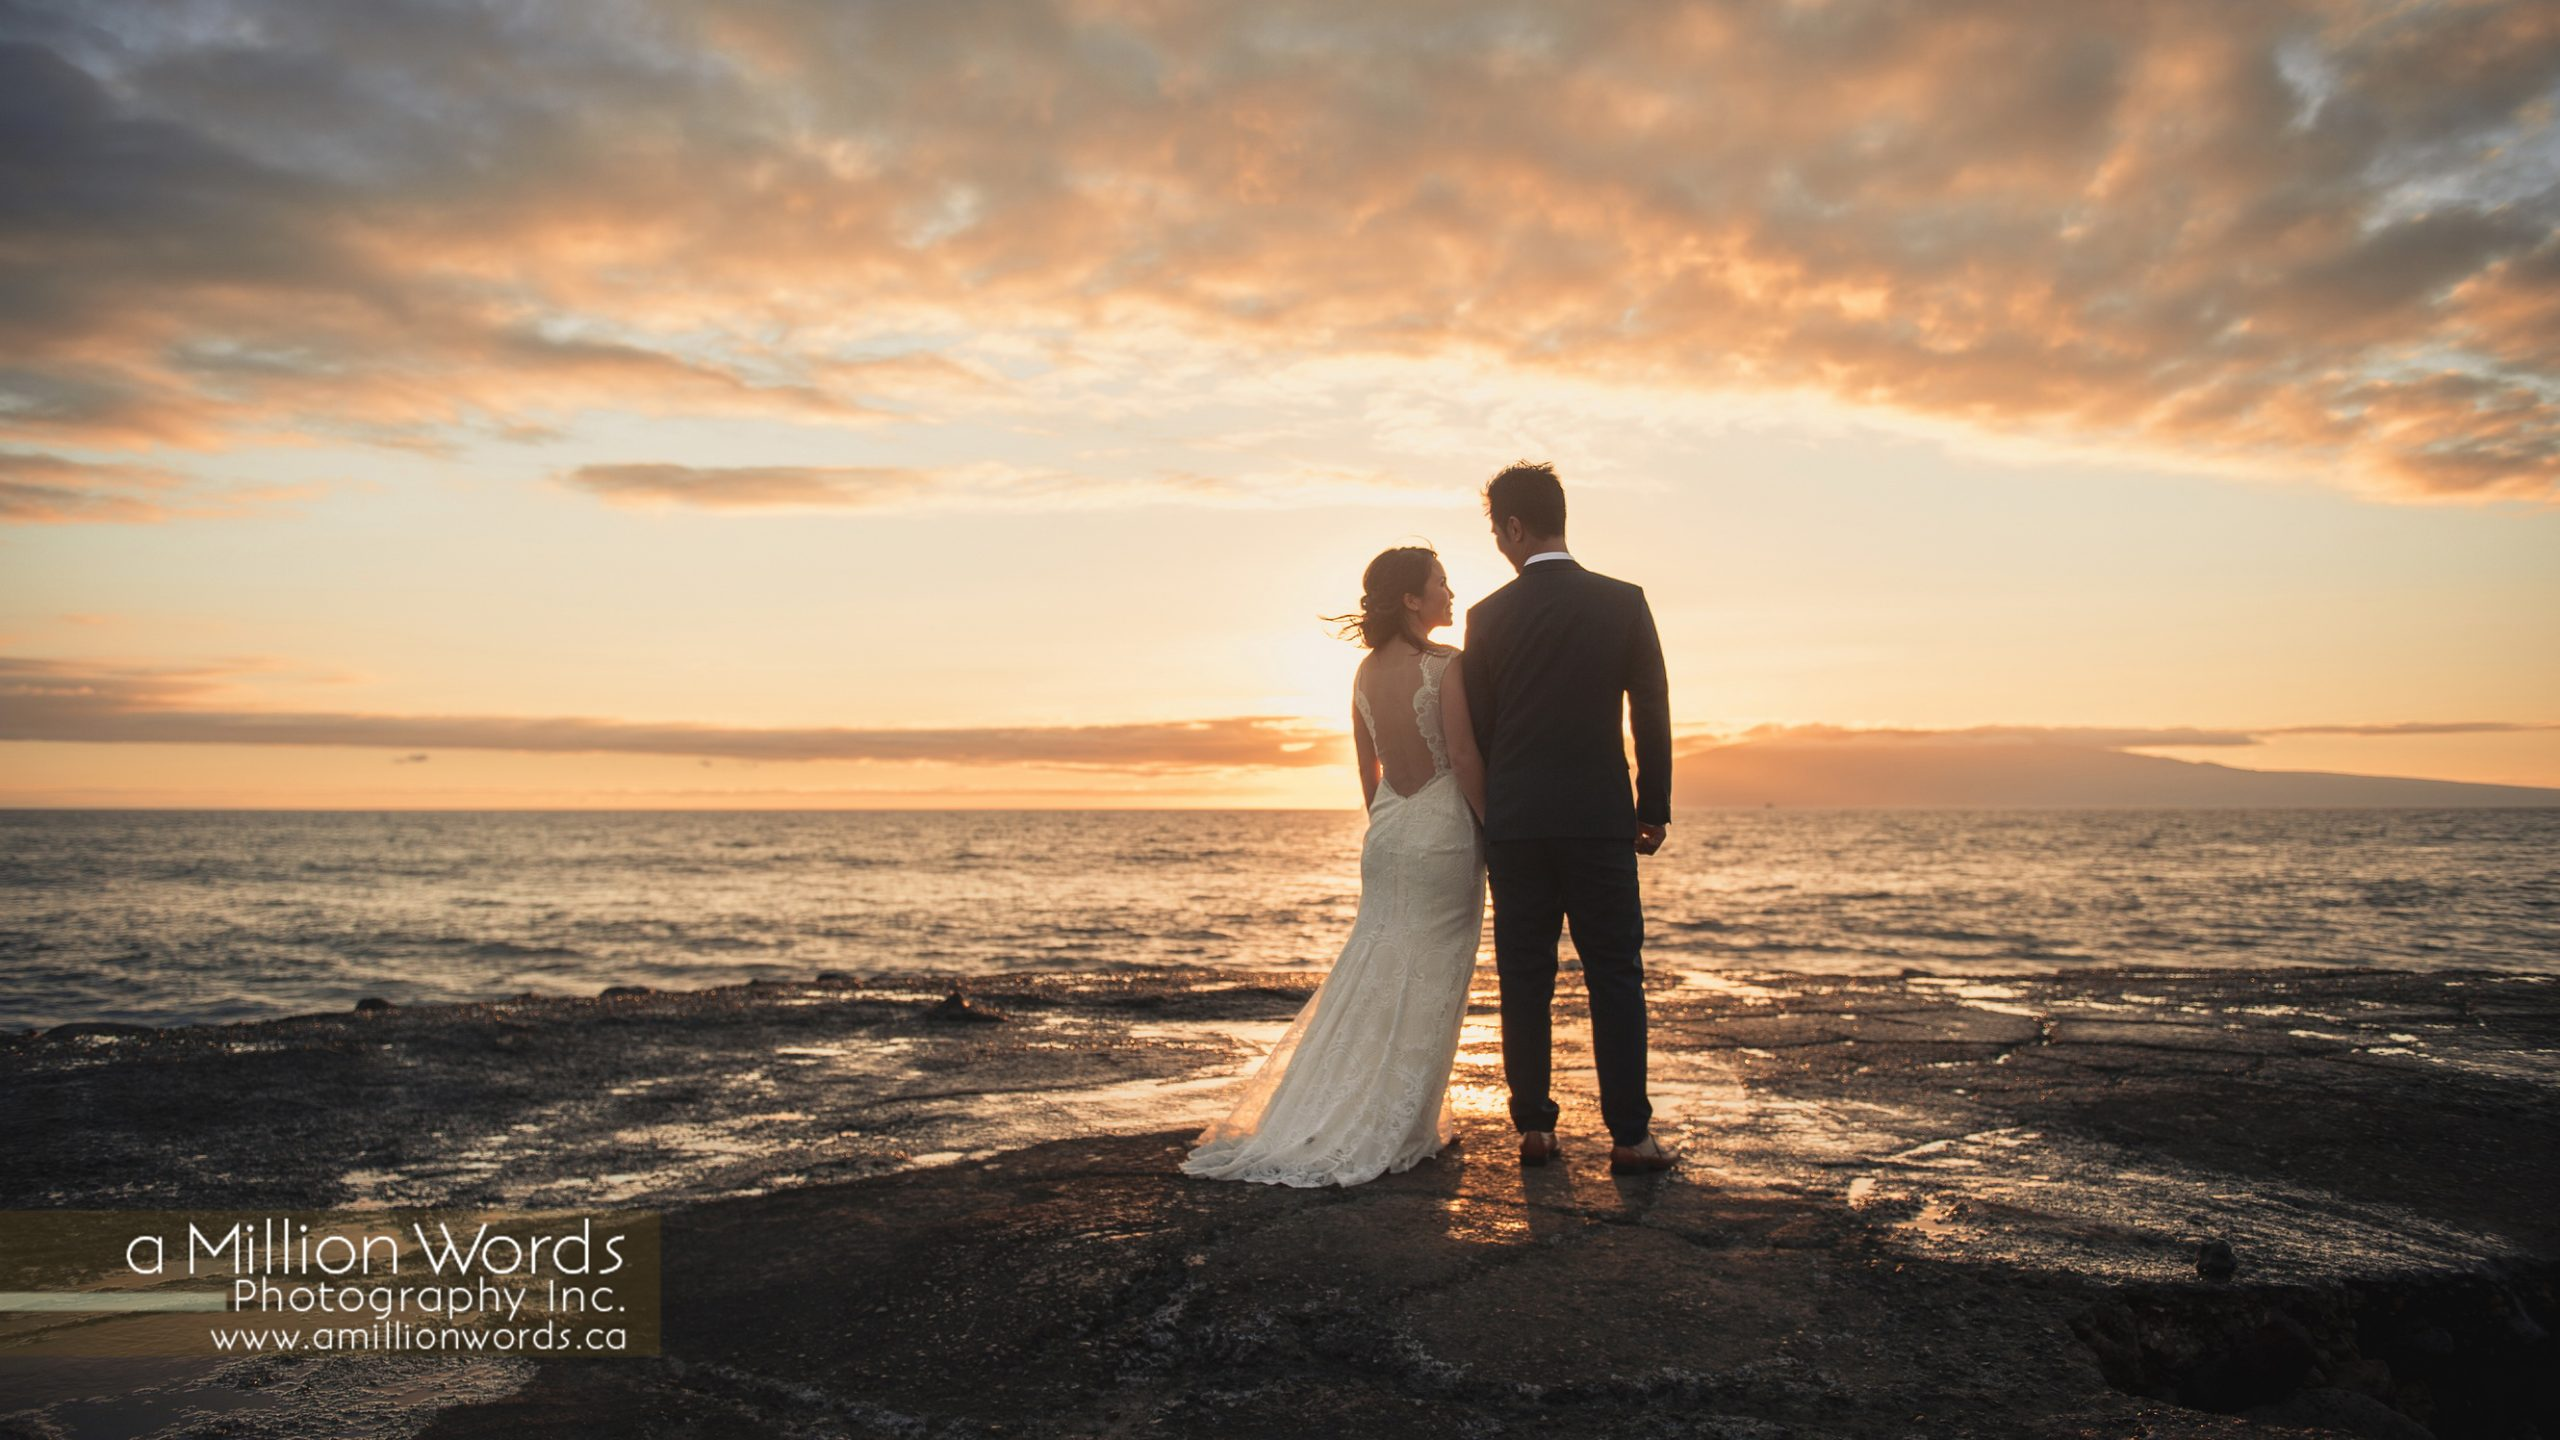 Destination wedding Maui photography